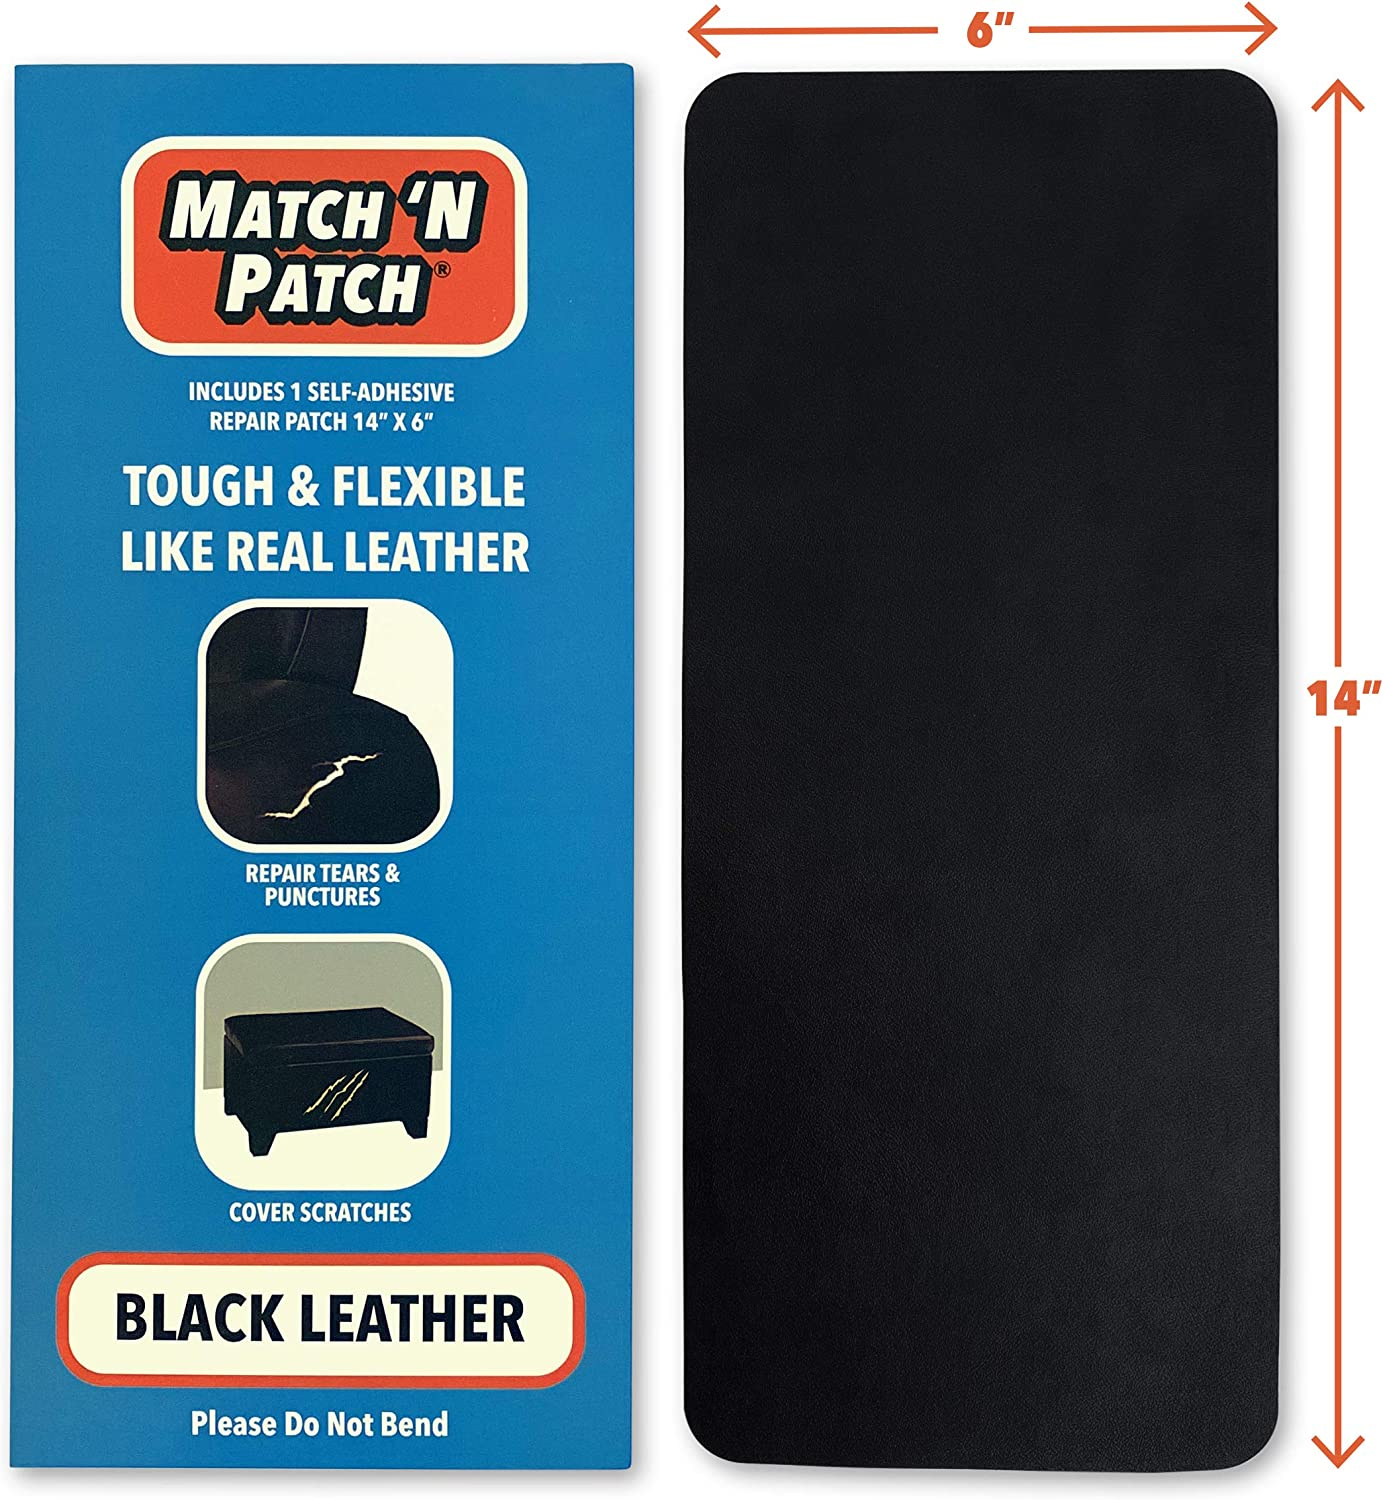 Match 'N Patch Realistic Black Leather Repair Patch